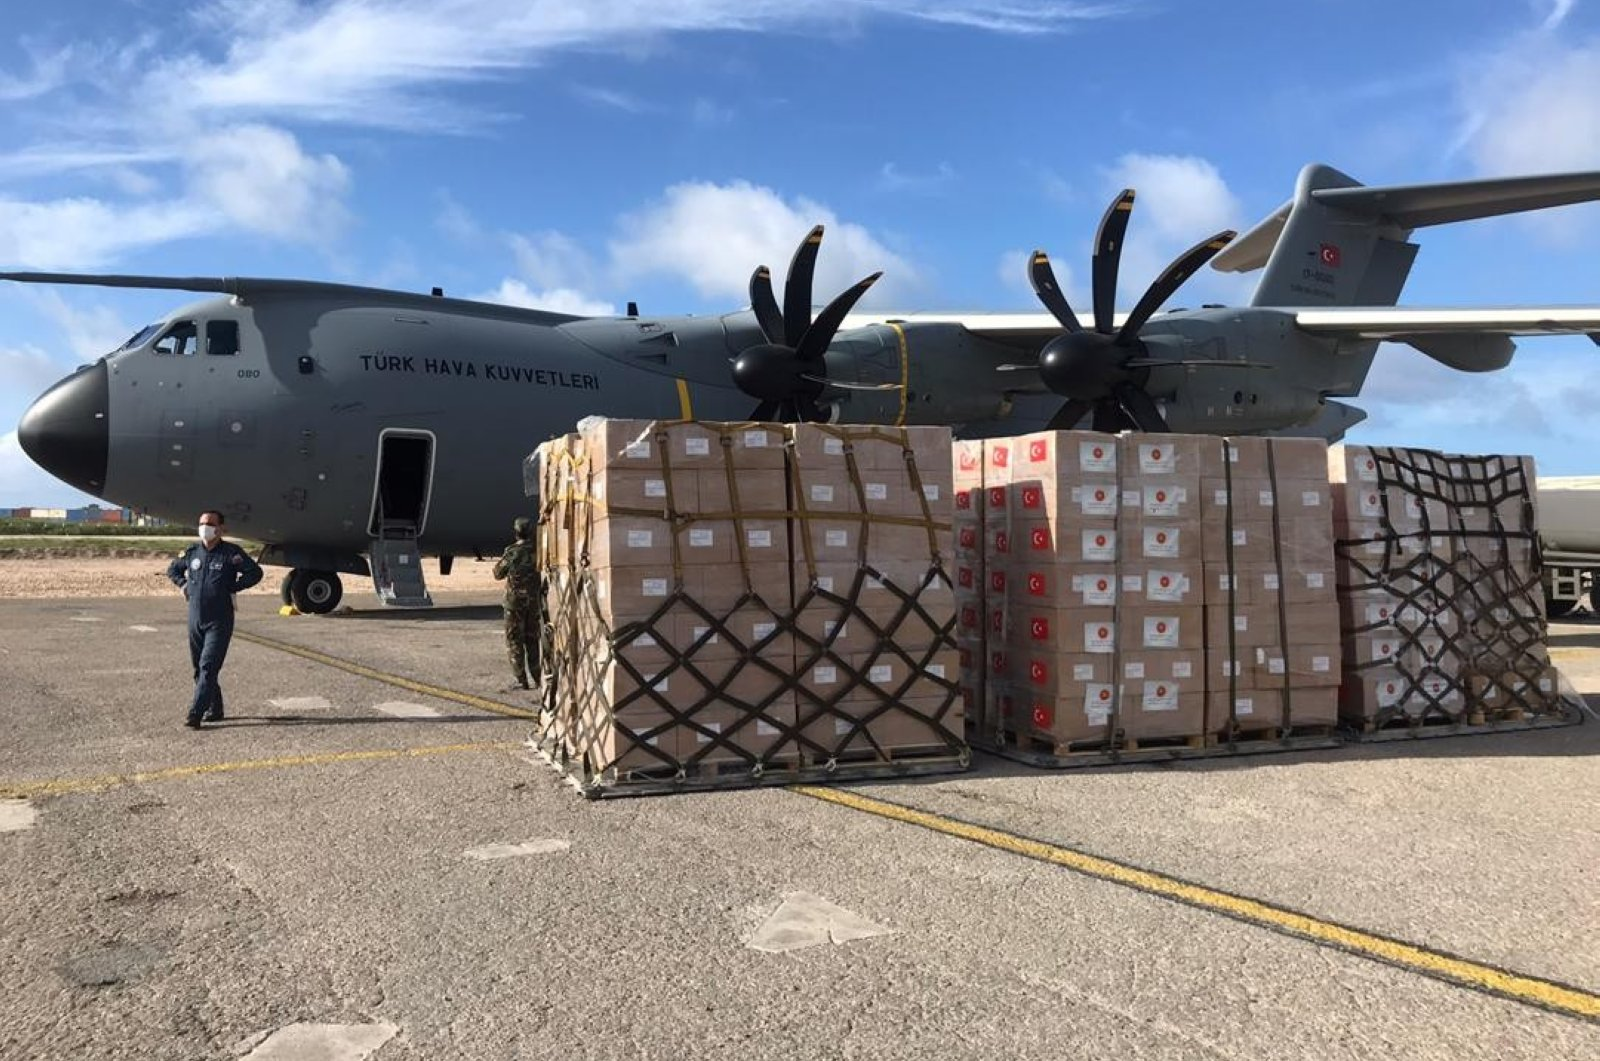 A Turkish military plane being loaded with medical supplies to deliver to Somalia on May 4, 2020 (IHA Photo)